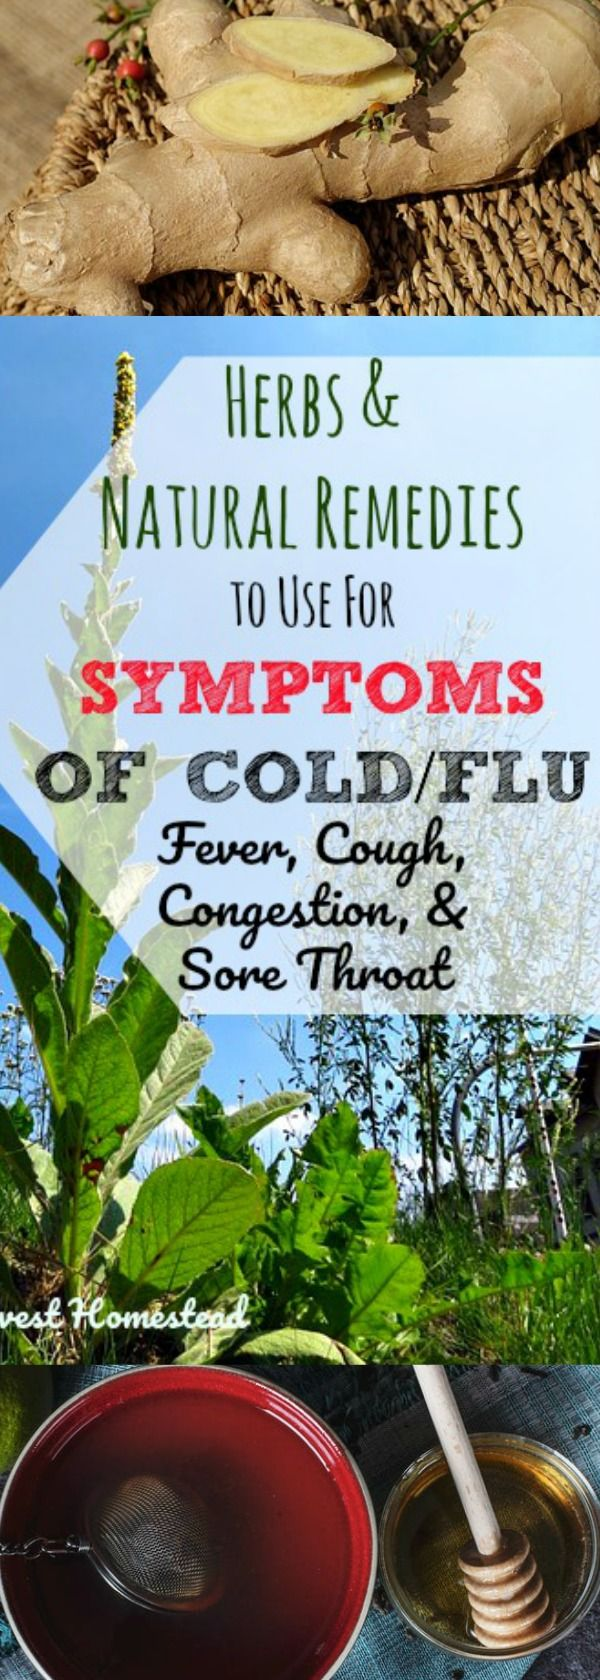 You ended up with a bad cold or flu, and now you're suffering from the symptoms...UGH. Well, here are natural remedies and herbs to use to help with the symptoms of colds & flu, including cough, congestion, fevers, and sore throat. Find out how to make teas, tinctures, and syrups that work for your cold & flu symptoms.